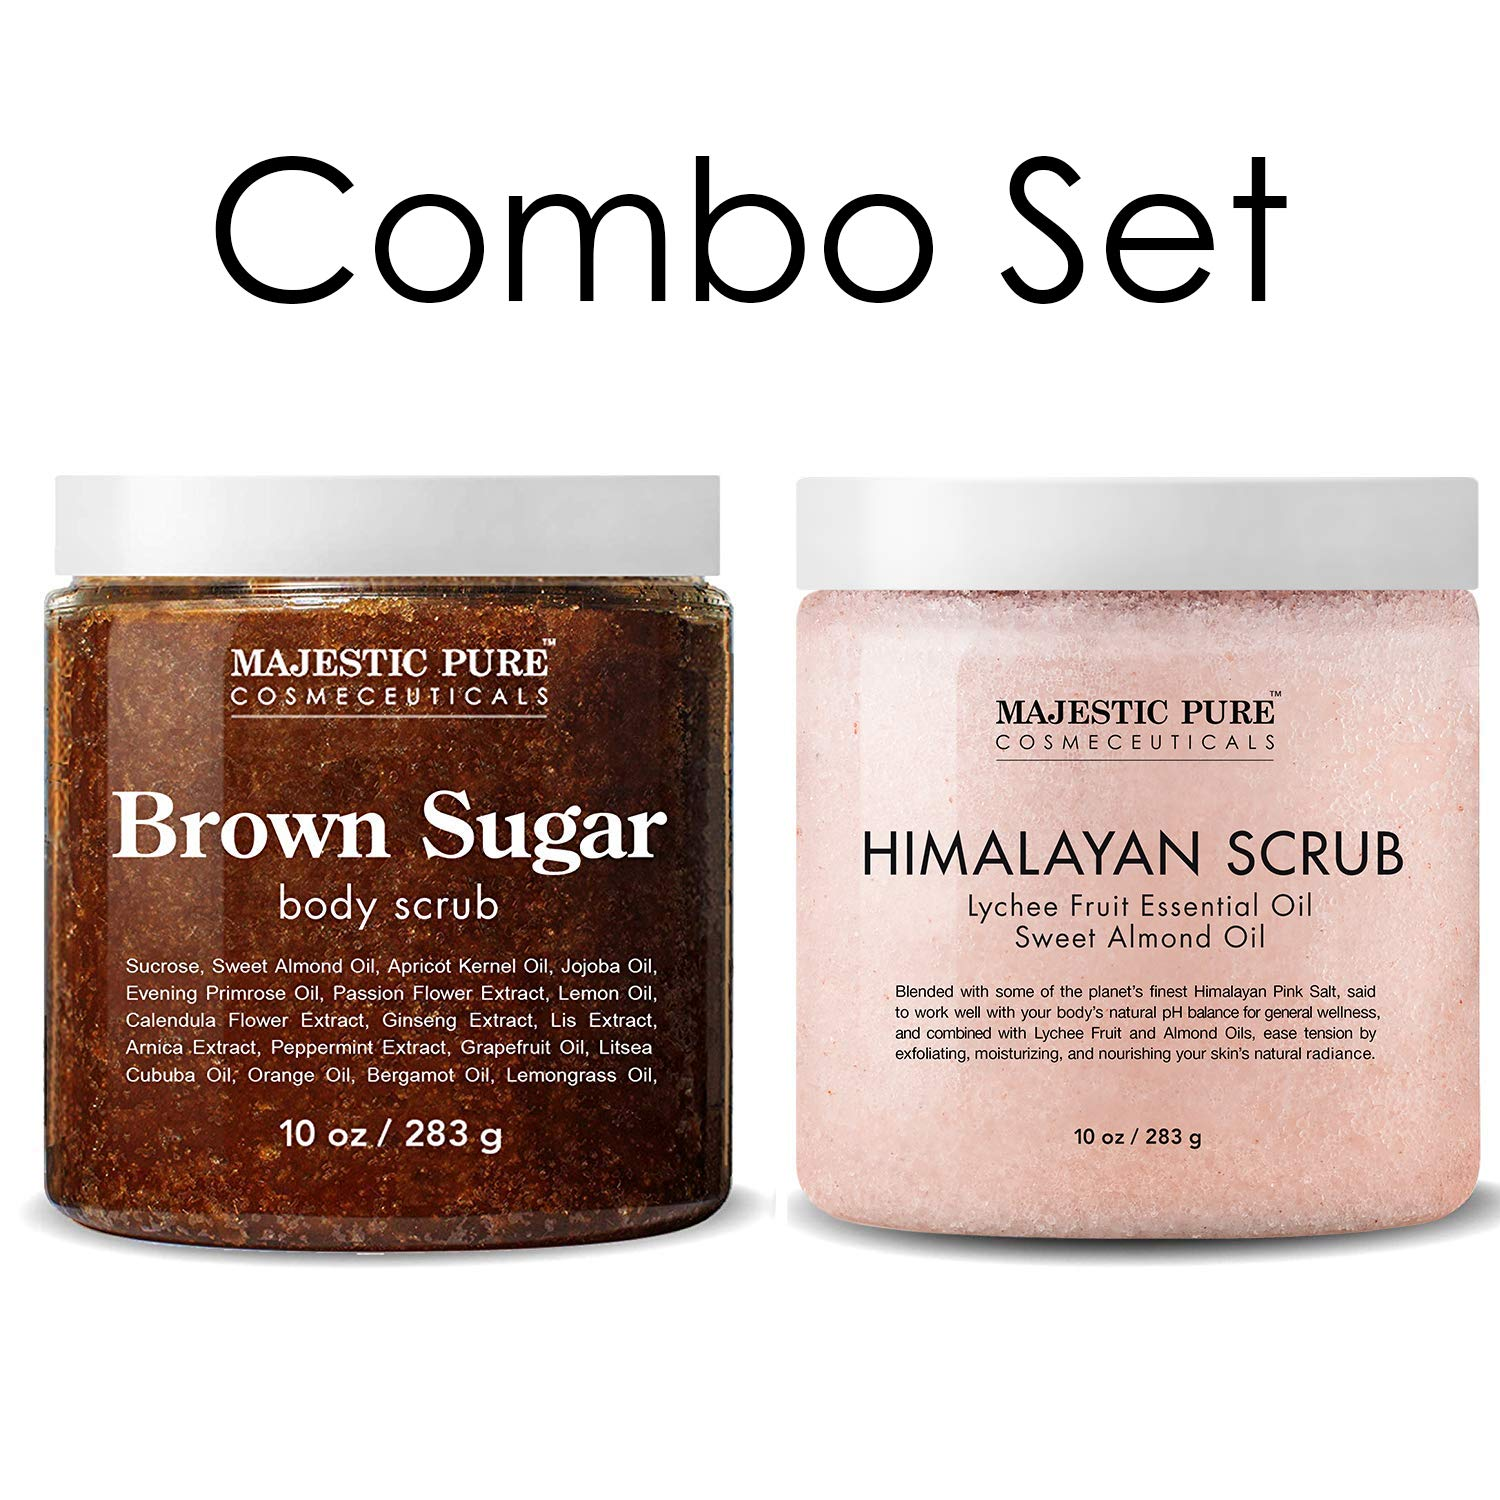 Majestic Pure Himalayan Salt Body Scrub & Brown Sugar Scrub Set - All Natural Scrubs for Skin Care - Exfoliate and Moisturize, Reduce the Look of Spider Veins, Eczema, Stretch Marks, Acne & Cellulite by Majestic Pure